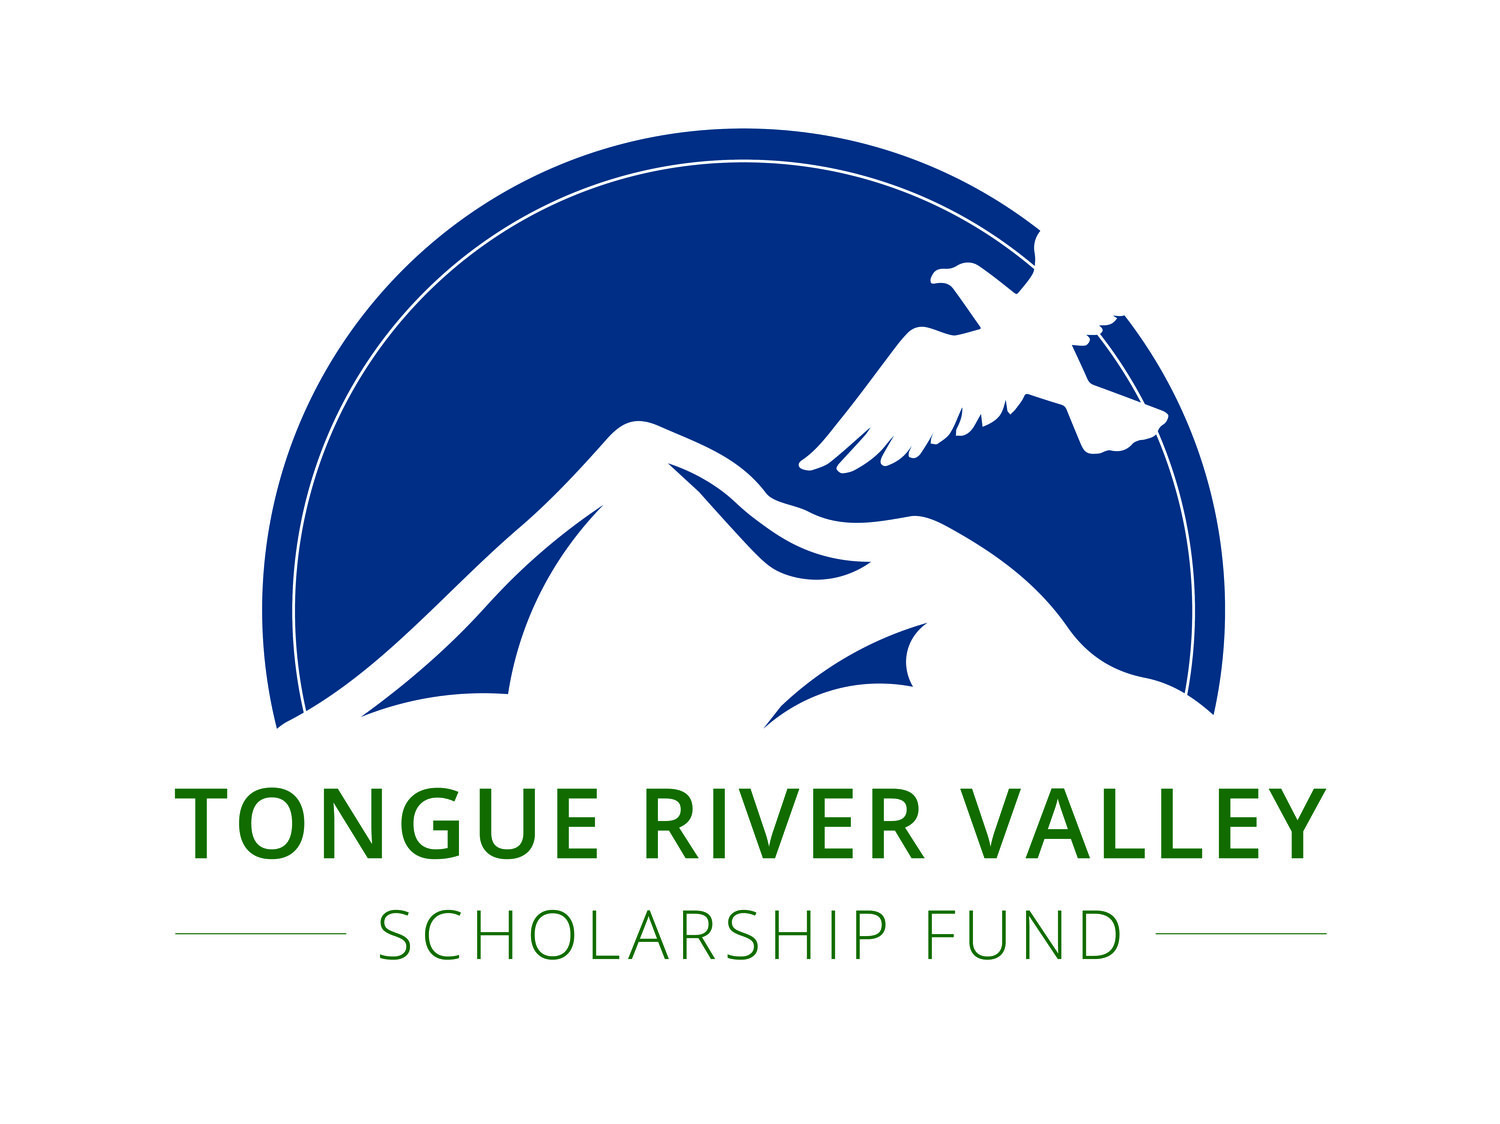 Tongue River Valley Community Scholarship Fund